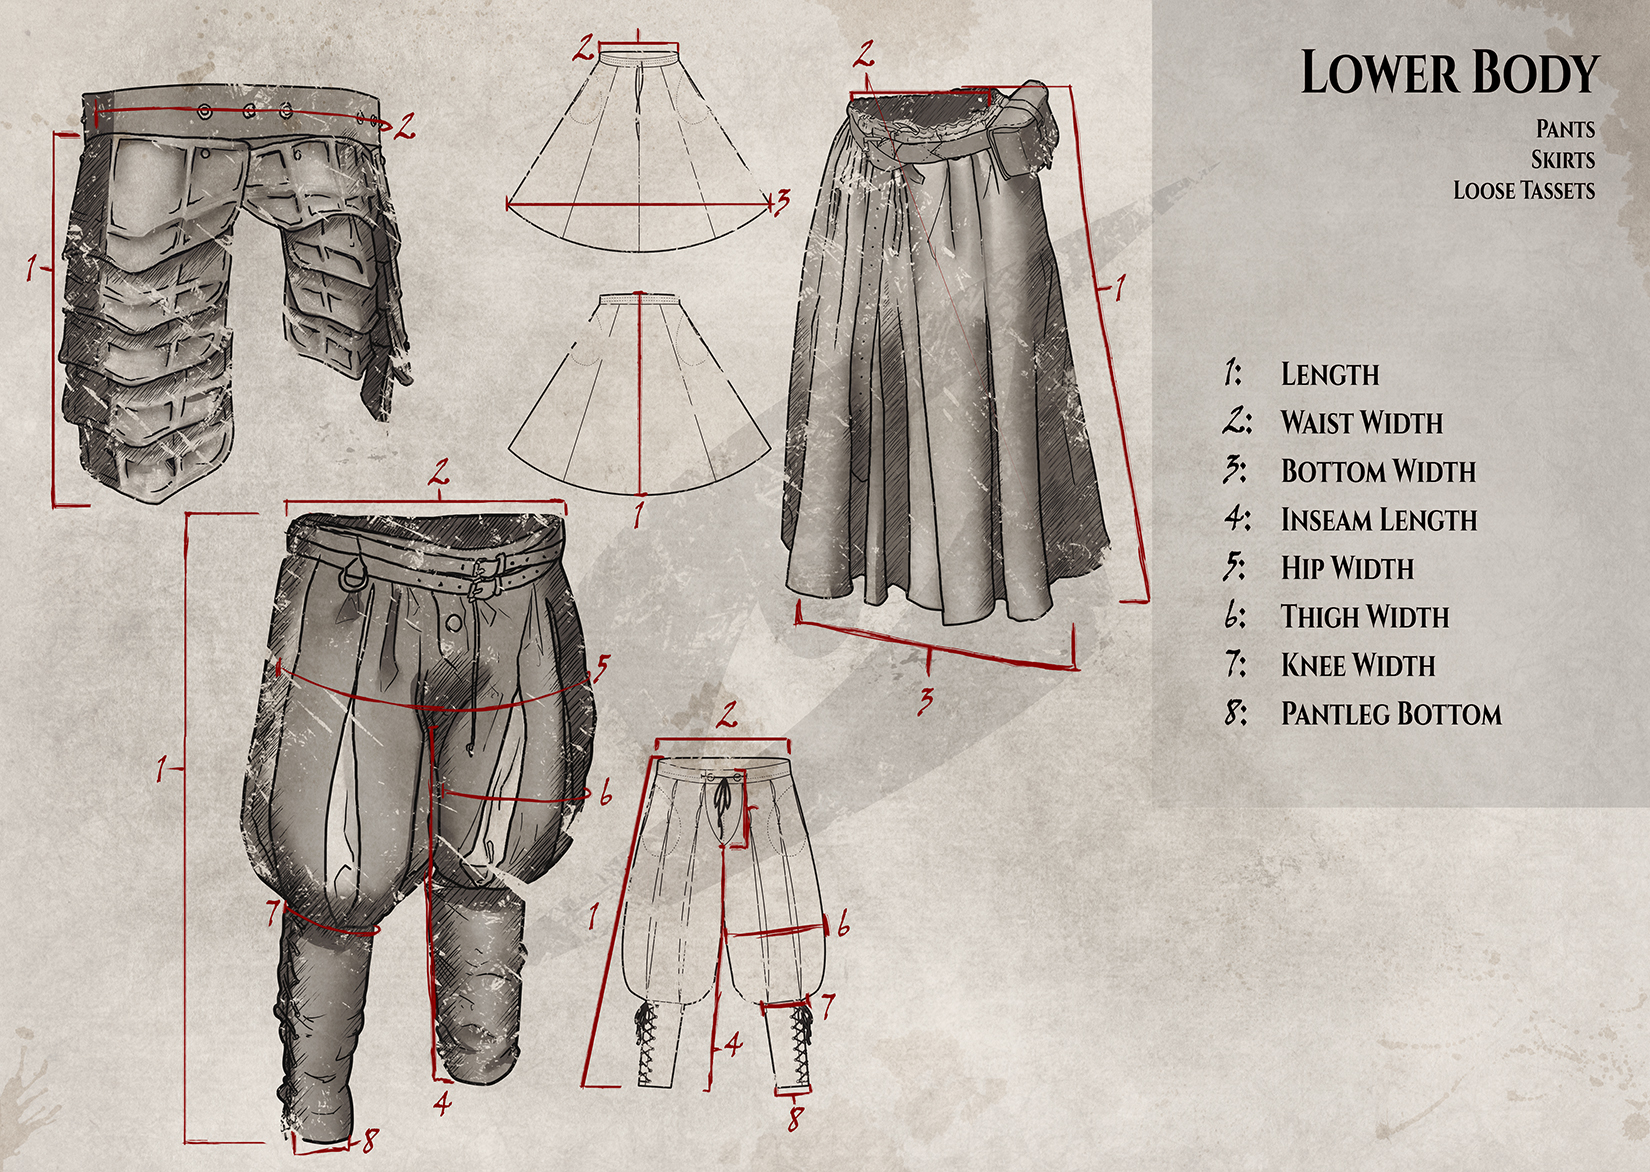 Size-guide-Lower-Body